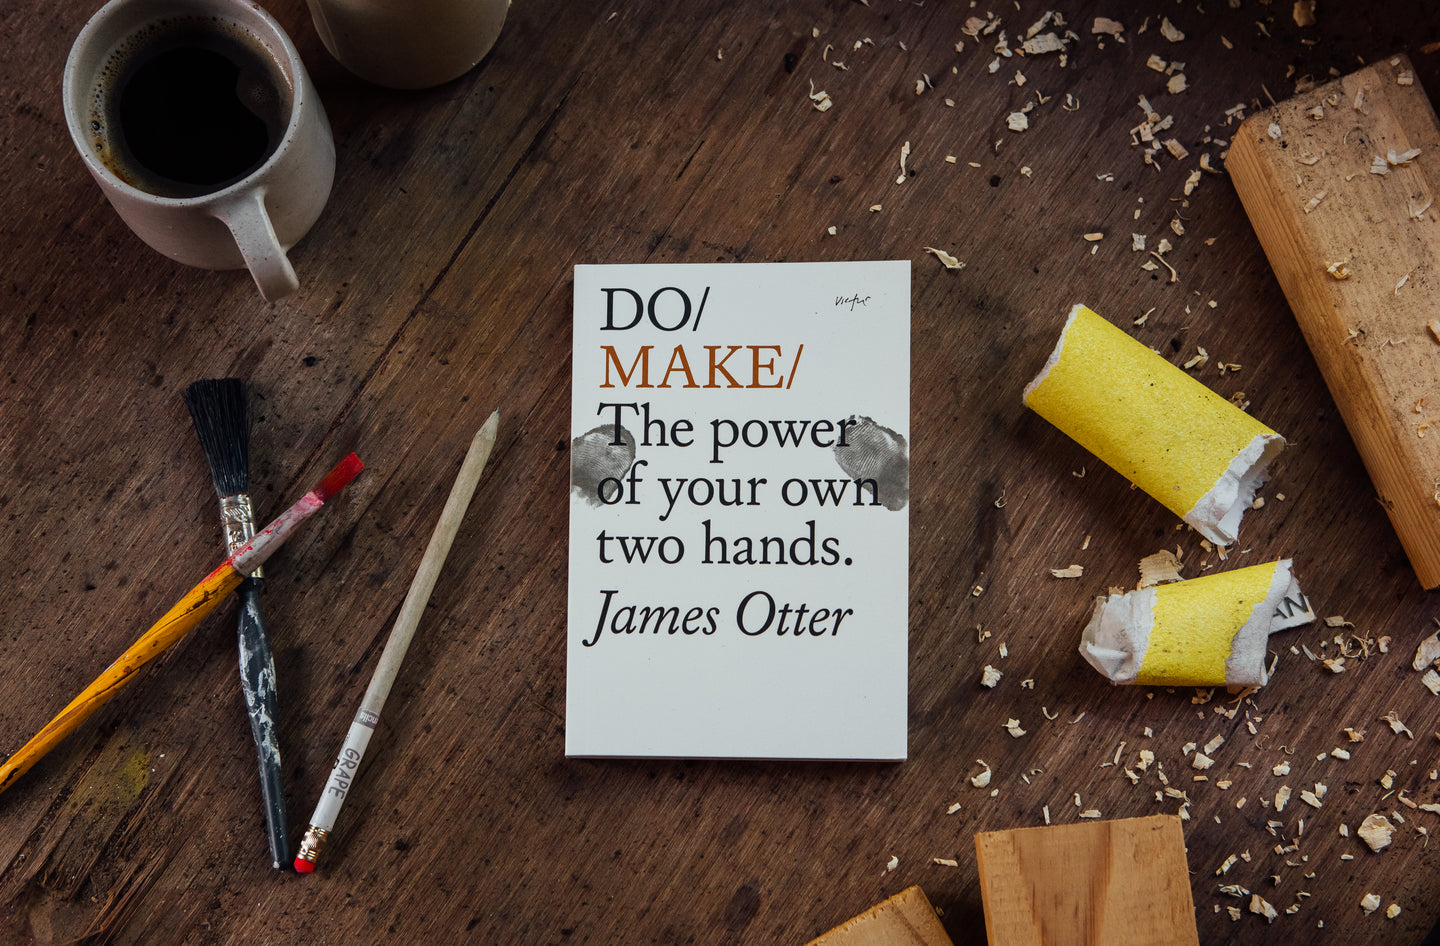 Do Make - The power of your own two hands